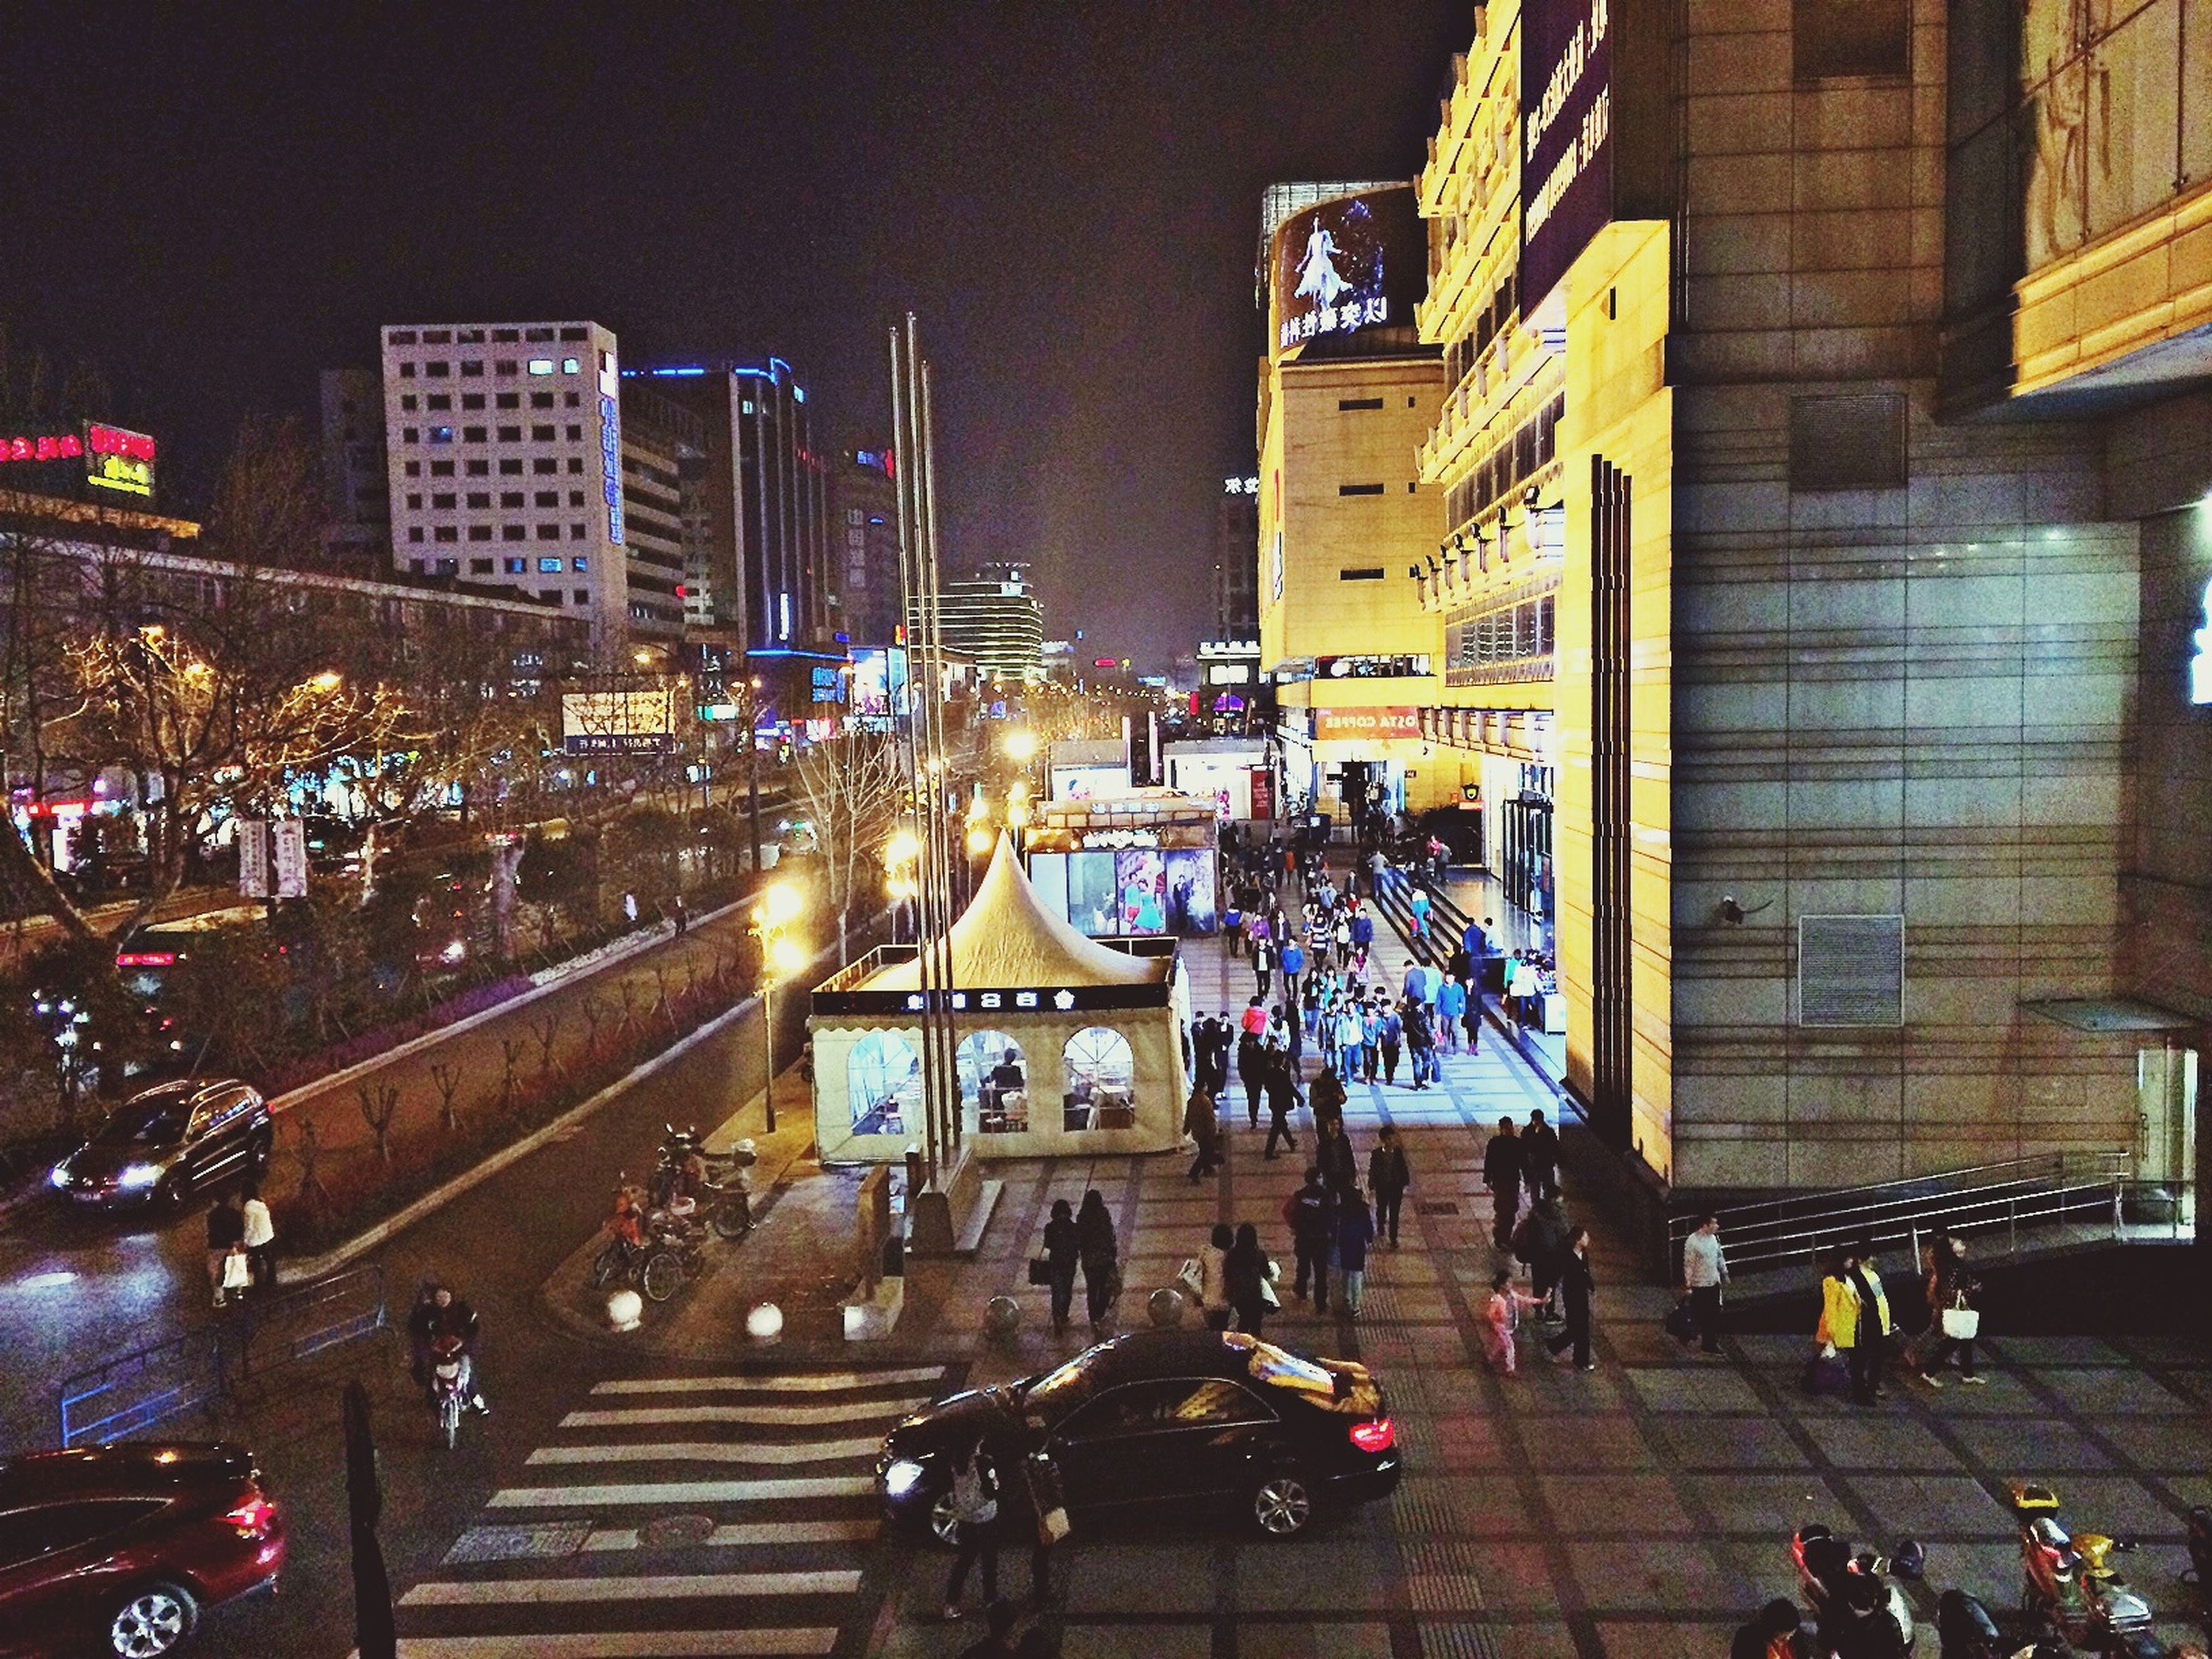 building exterior, illuminated, architecture, built structure, night, city, street, city life, city street, street light, large group of people, lighting equipment, building, text, road, outdoors, transportation, men, zebra crossing